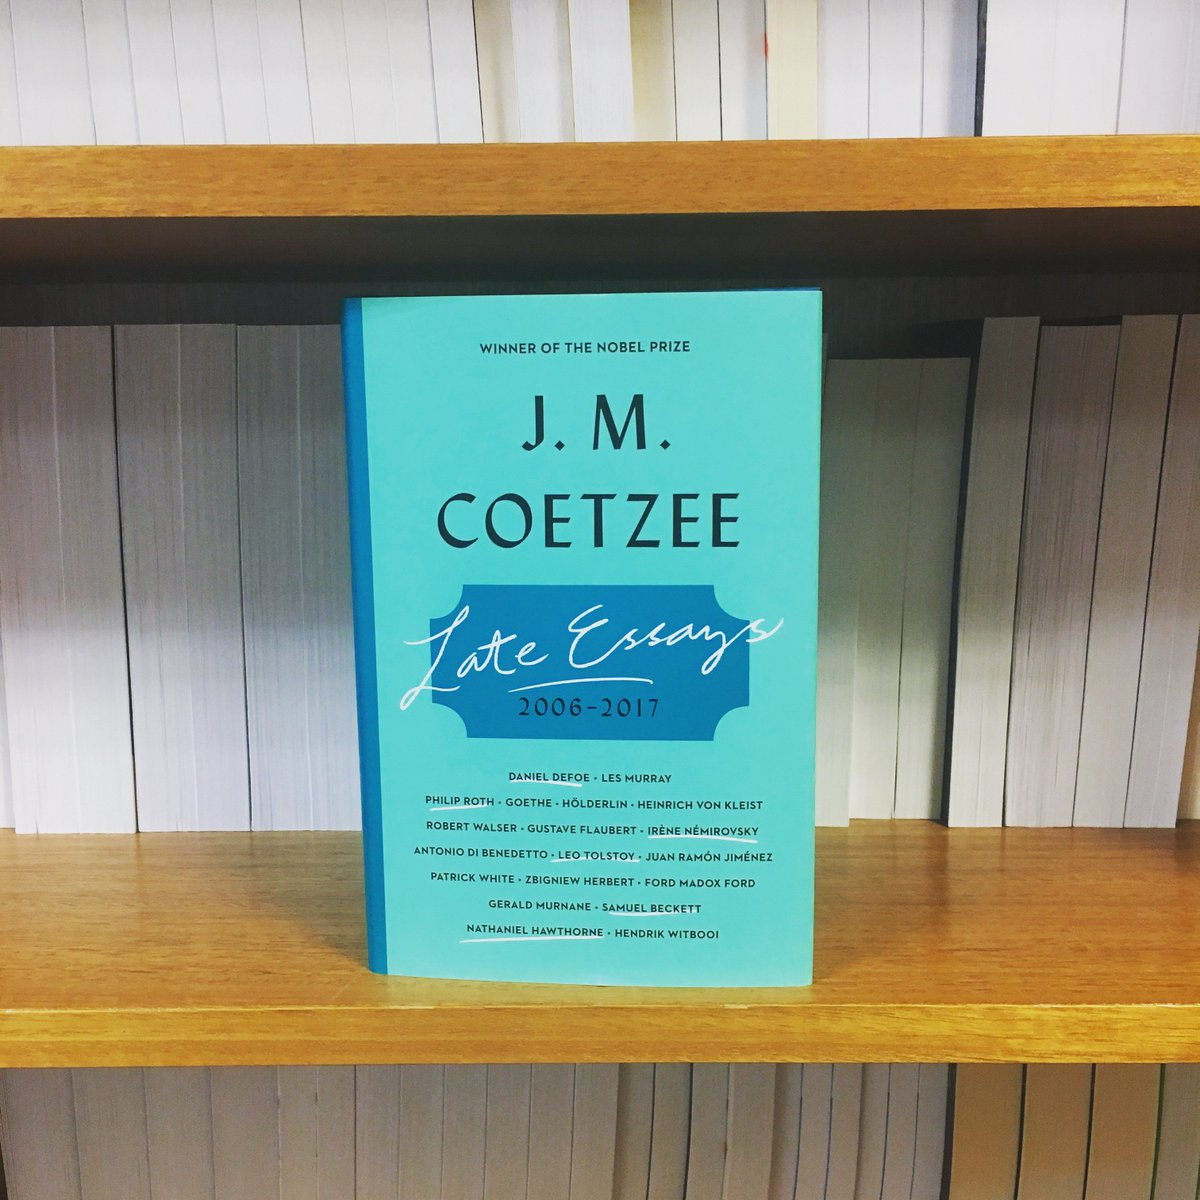 Viking On Twitter The Reflective And Erudite Kirkusreviews  Viking On Twitter The Reflective And Erudite Kirkusreviews Late  Essays By Nobel Prizewinning Author J M Coetzee Is Now Available  Population Essay In English also Business Plan Writers Denver Co  Science Topics For Essays